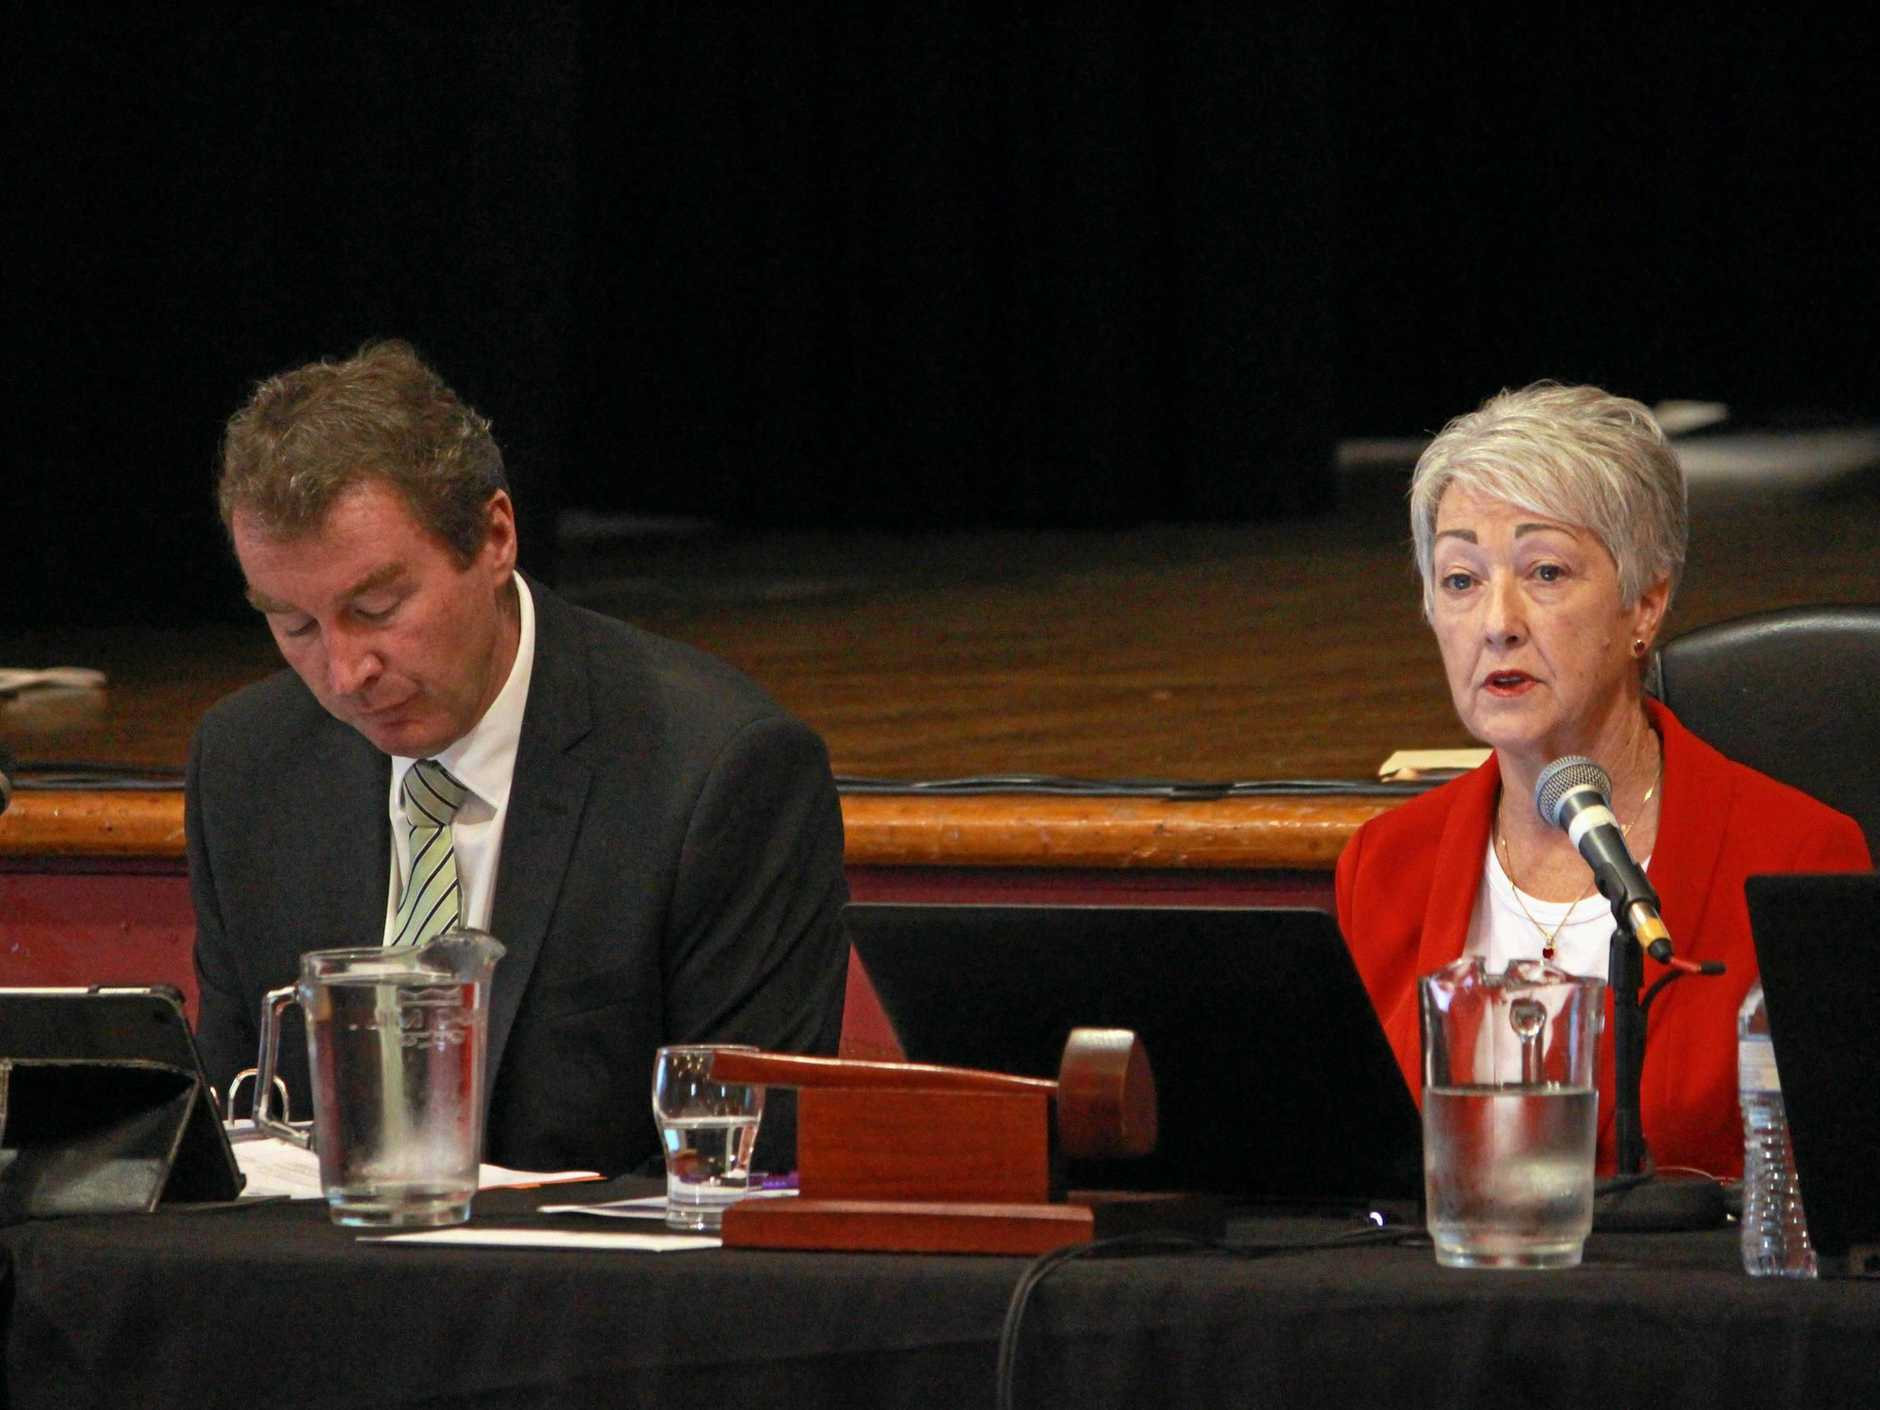 Mayor Tracy Dobie slammed the GBCA's approach in a passionate speech at the Warwick Town Hall.